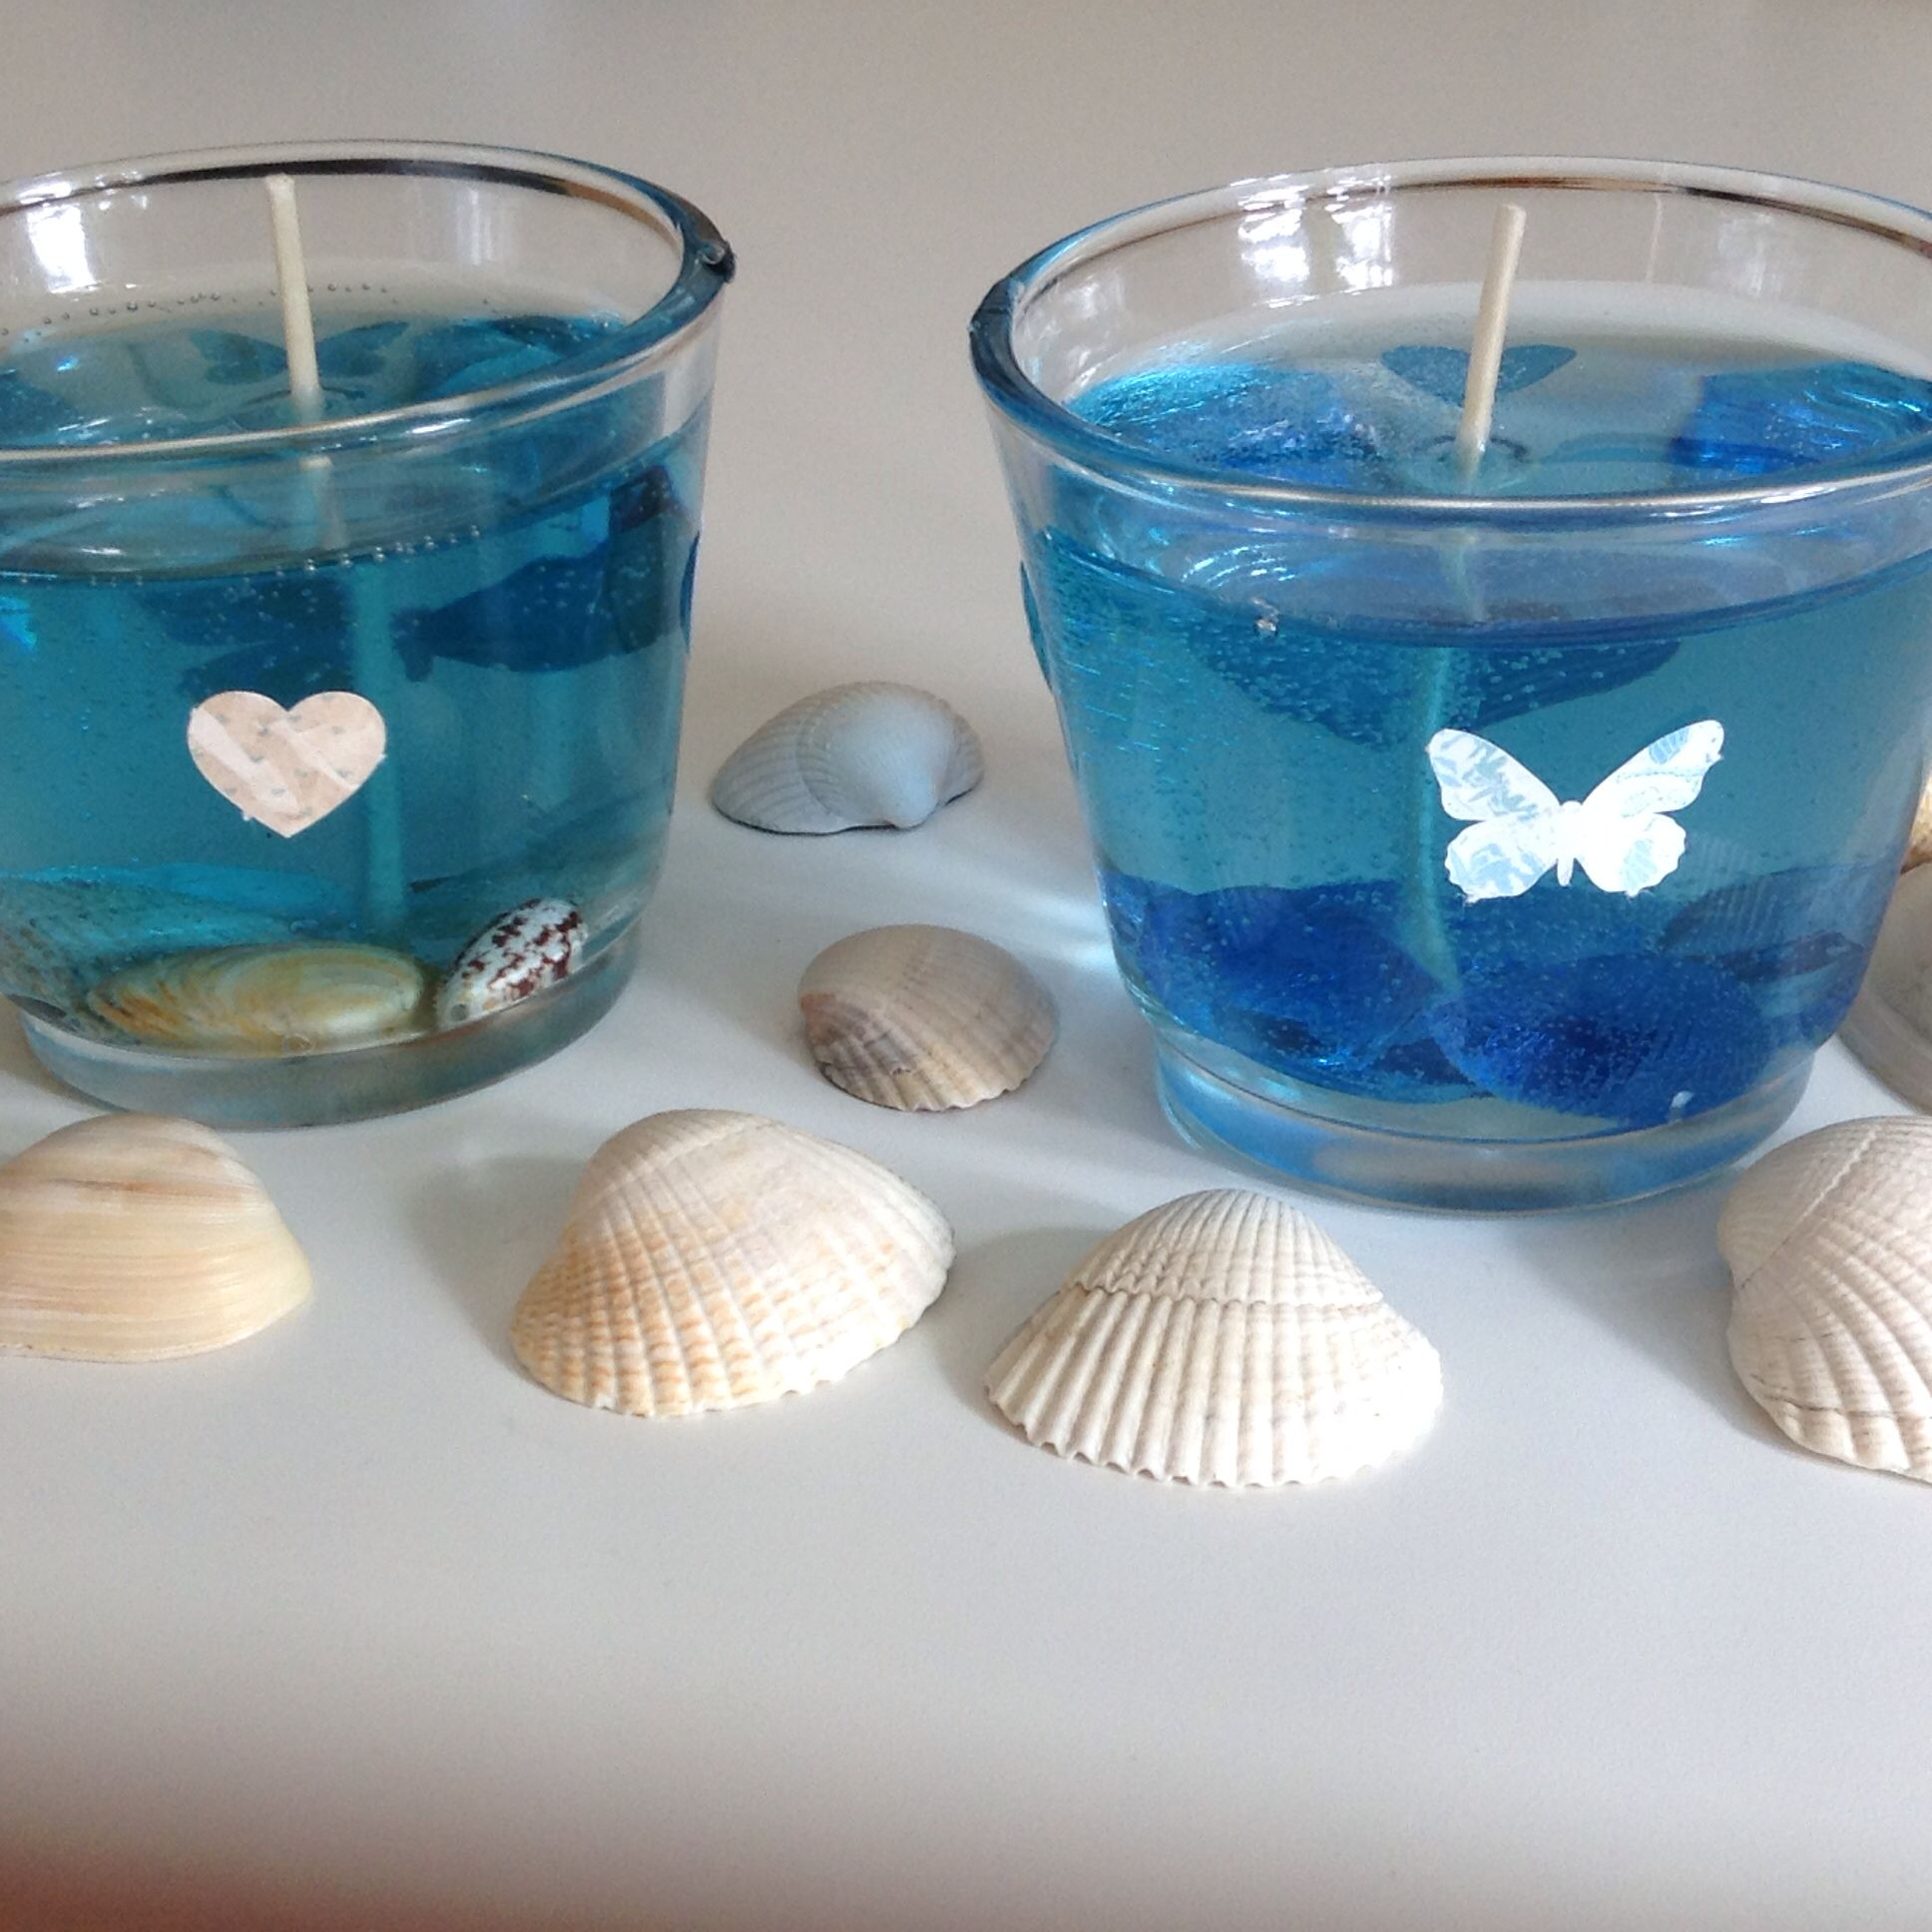 Homemade candles by Ava